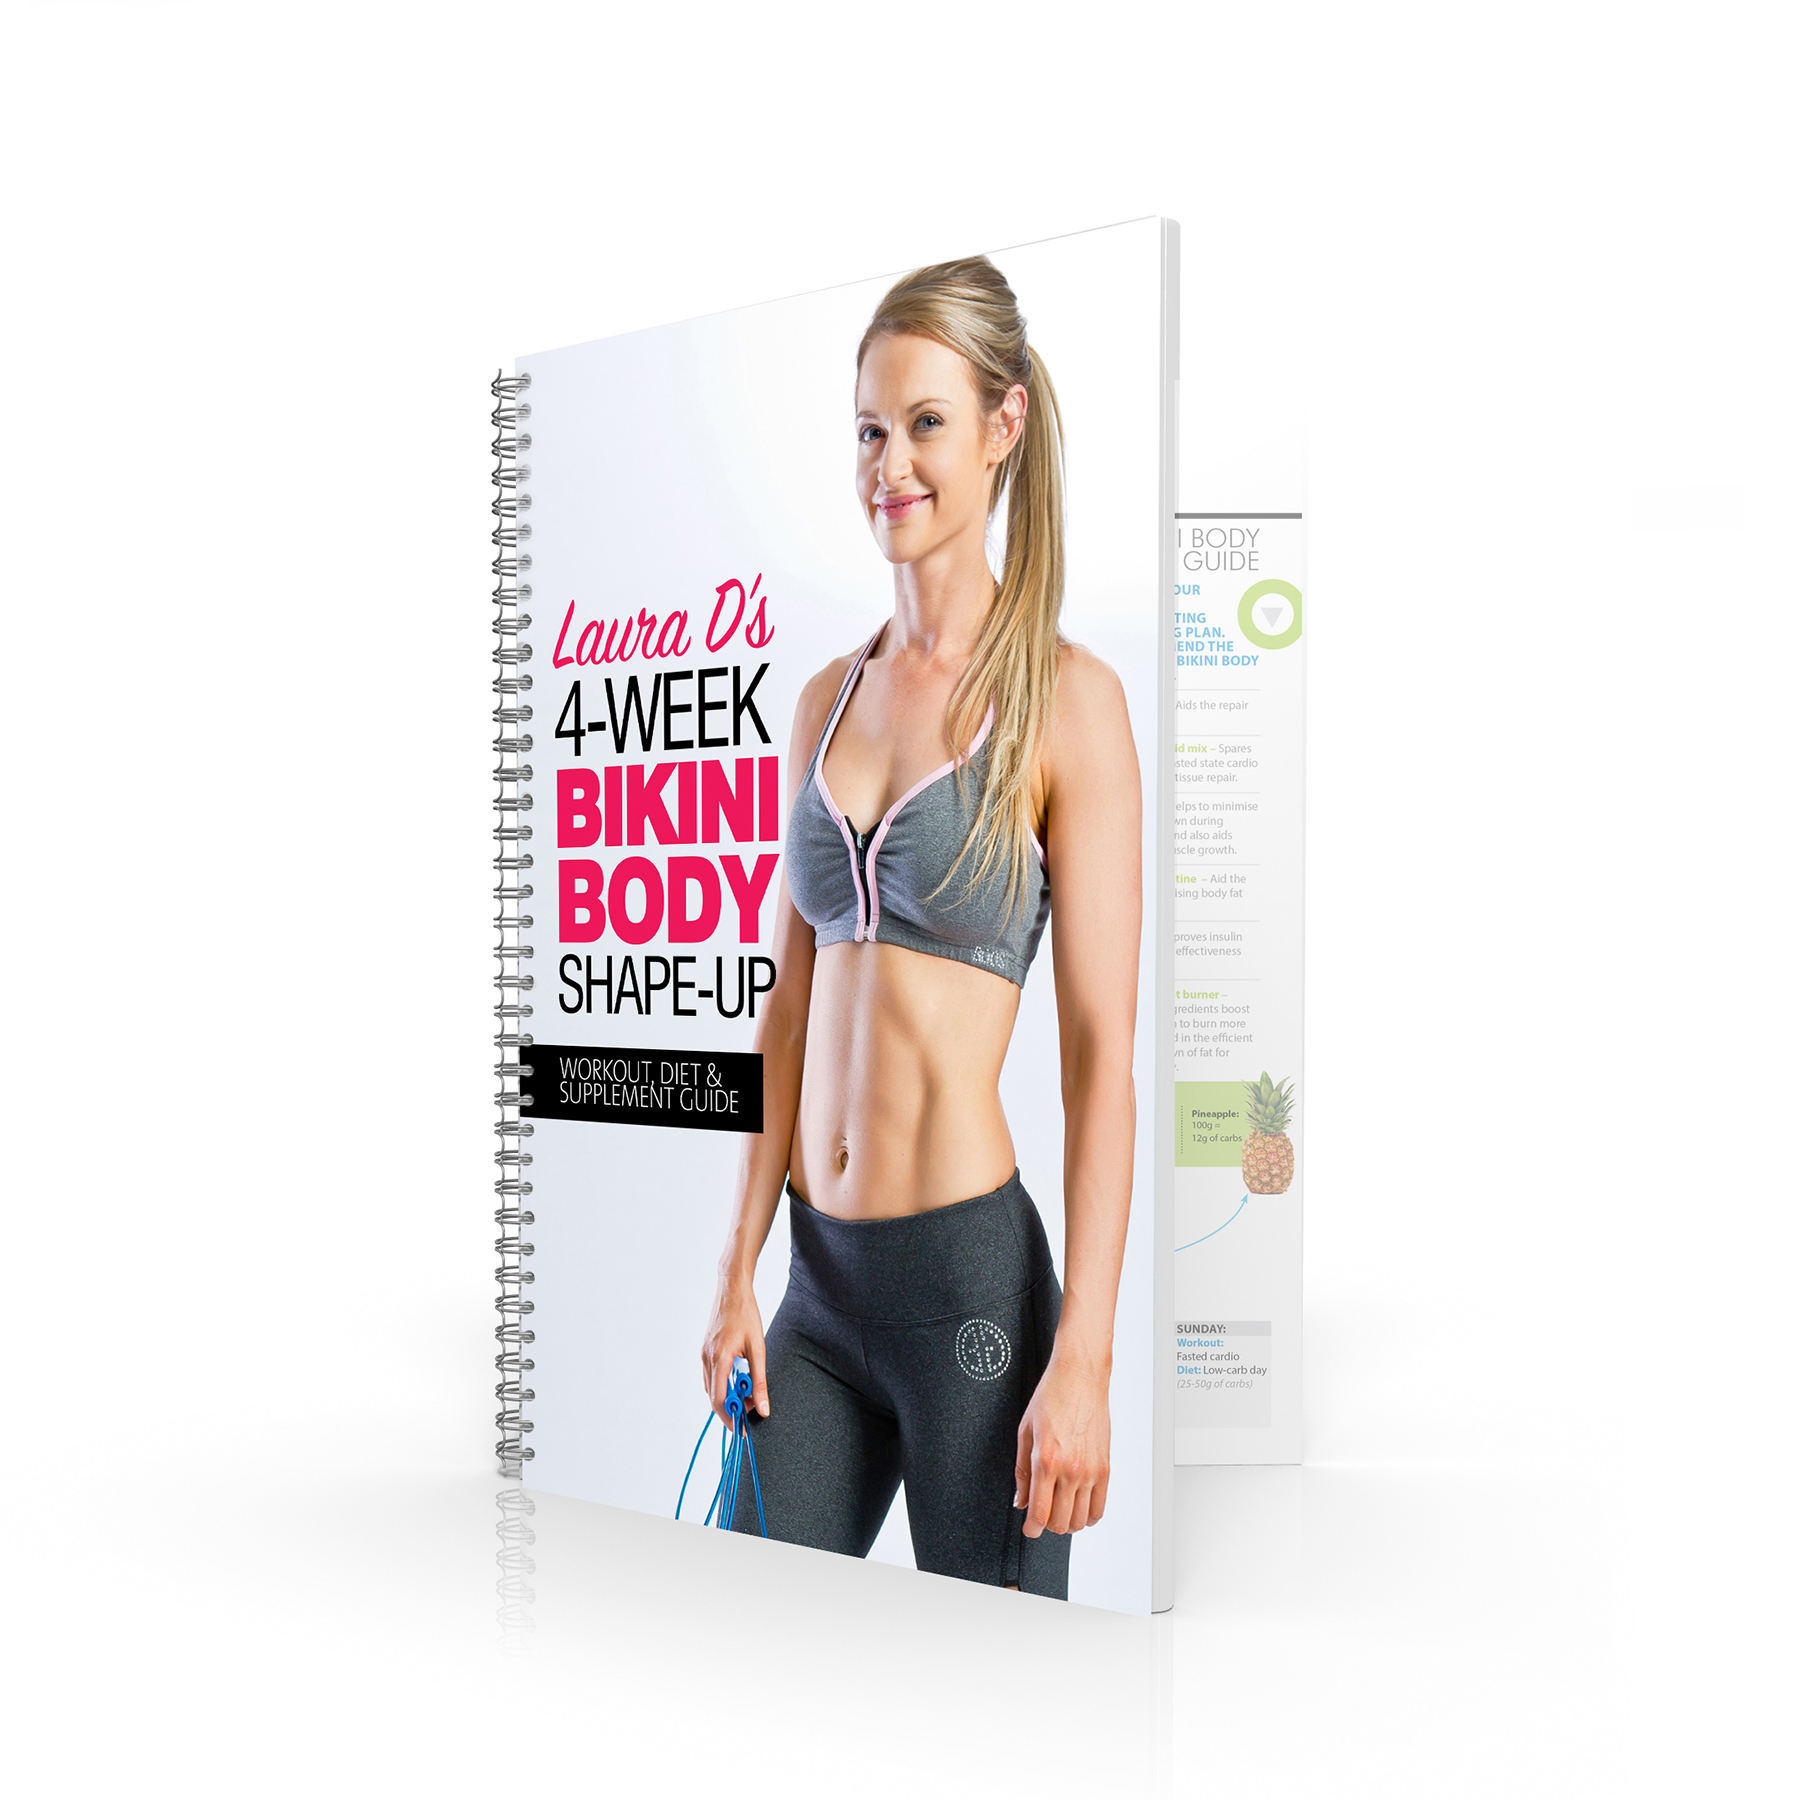 Best weight loss supplement without losing muscle photo 9